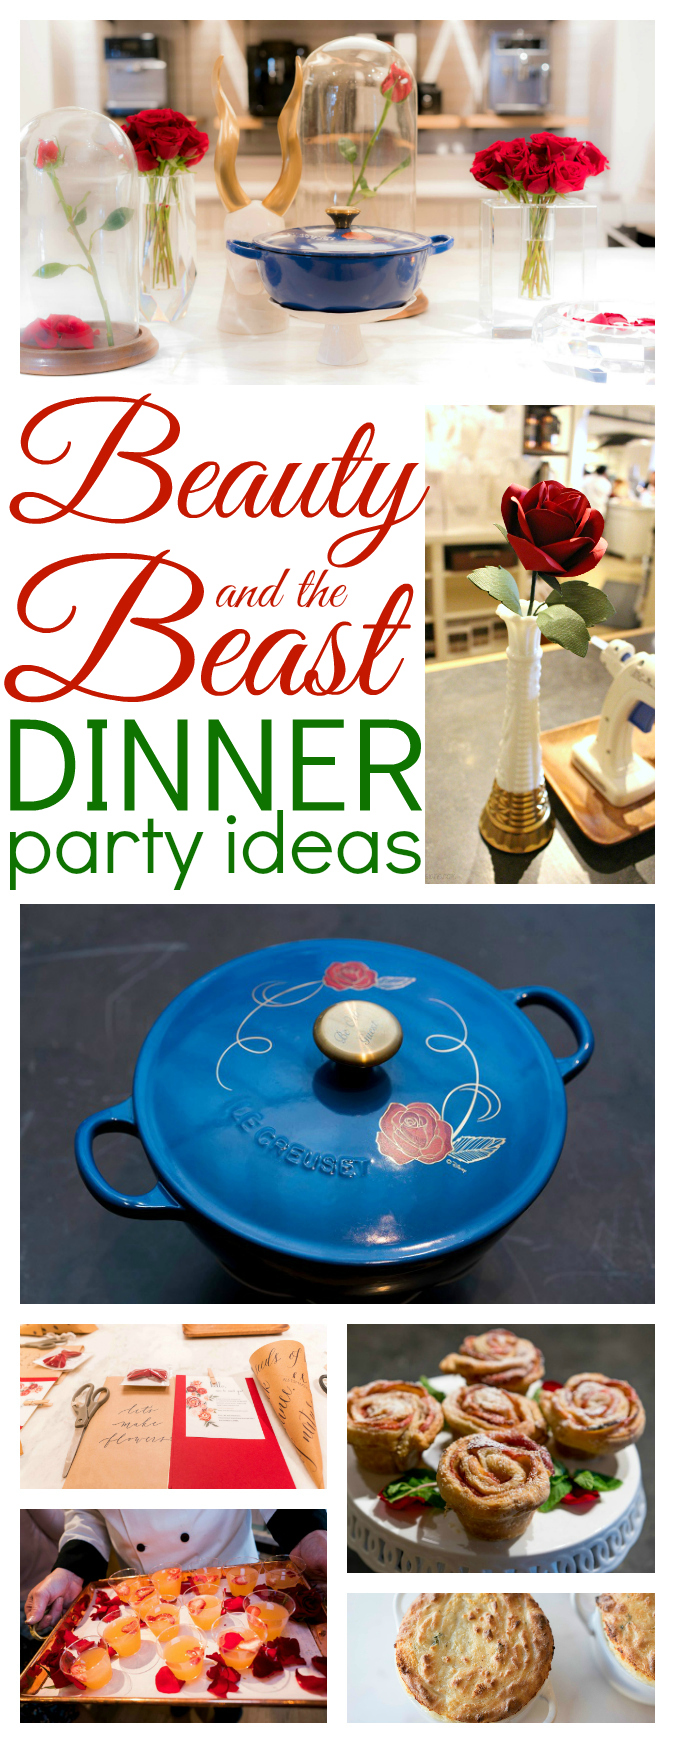 Beauty and the beast dinner party ideas